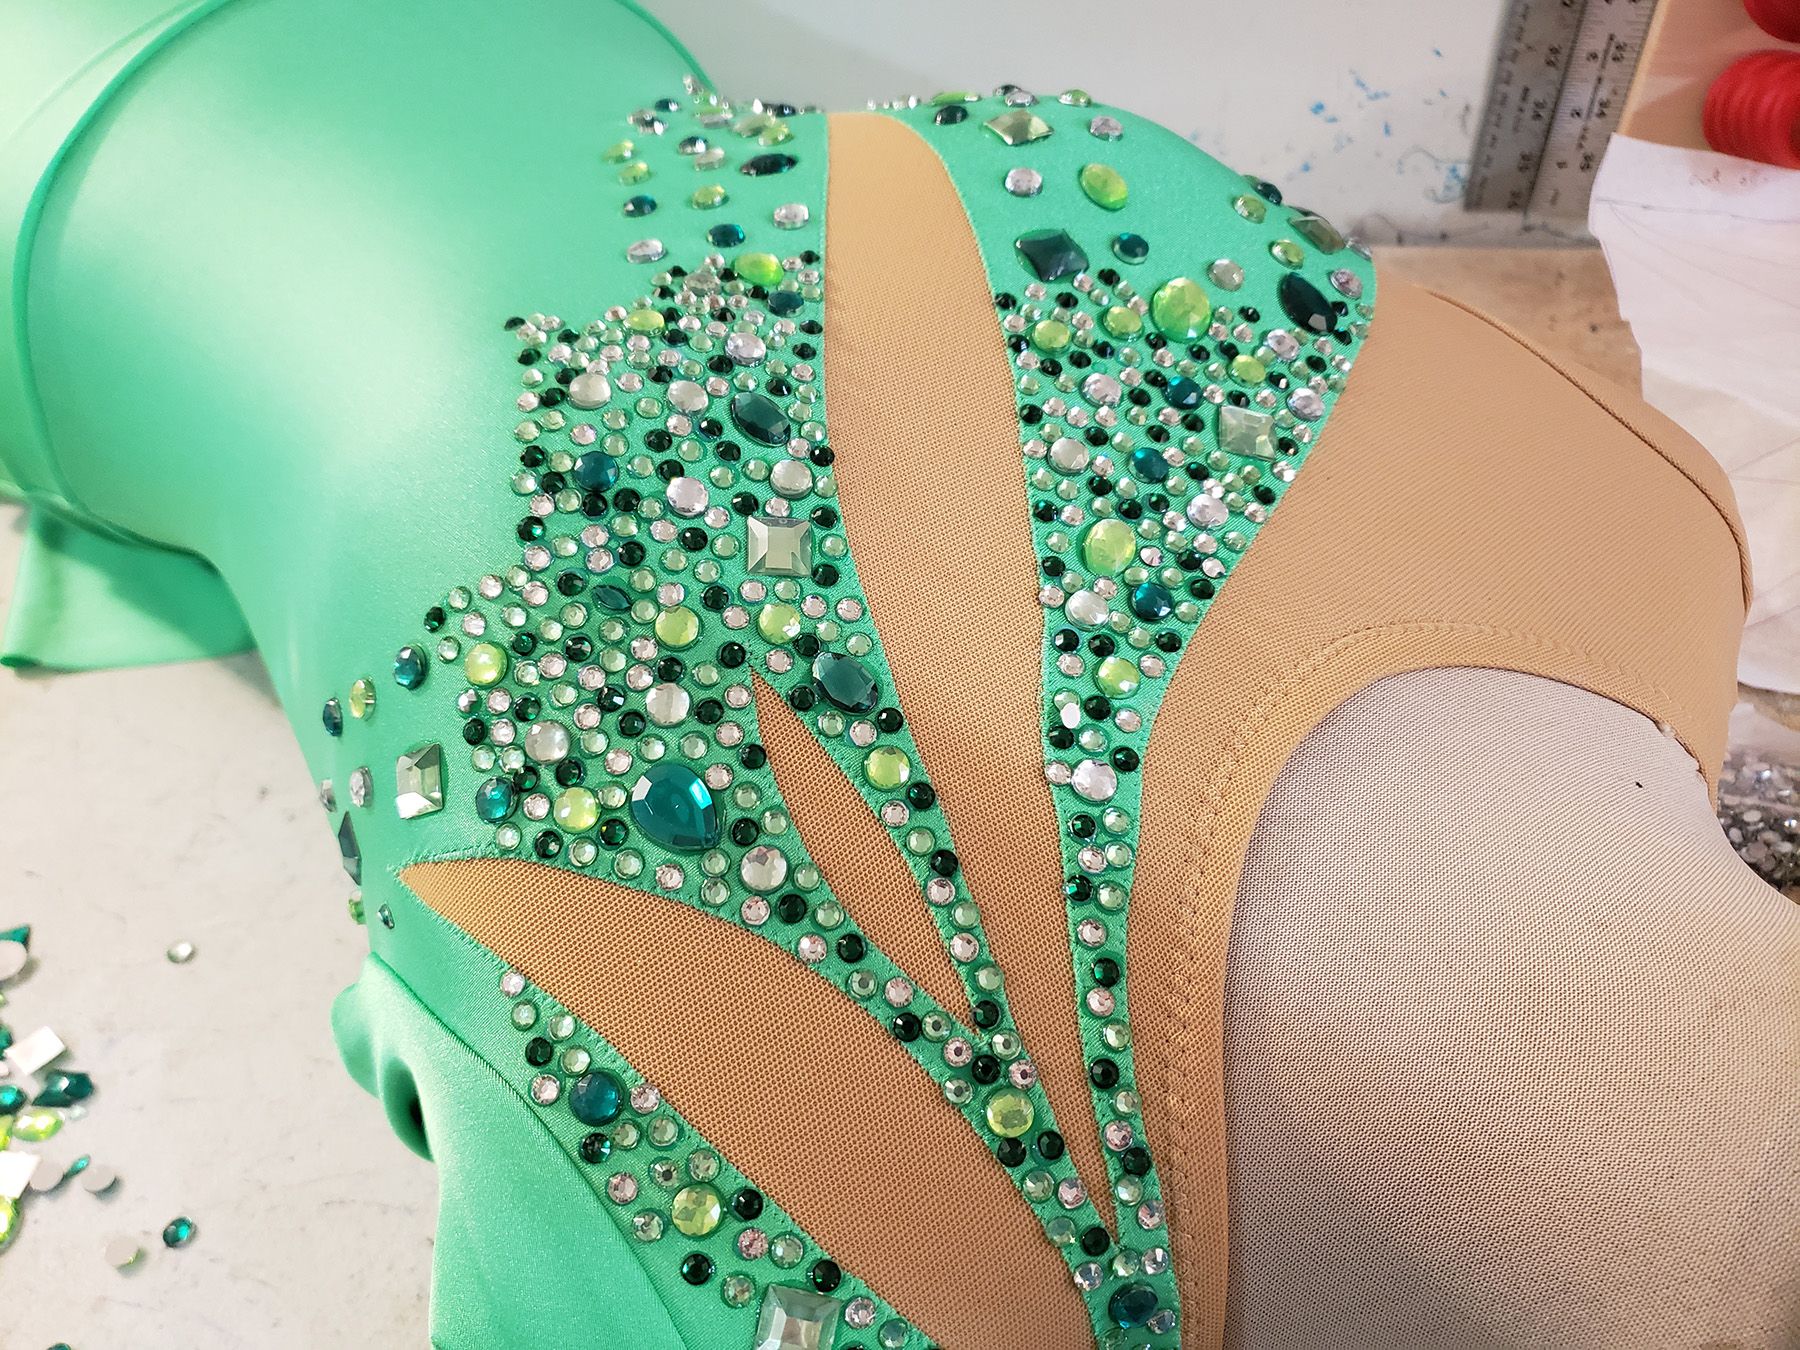 A green skating dress on a dress form, with large rhinestones glued on. The rhinestones are clear and various shades of green, in a variety of shapes and sizes.